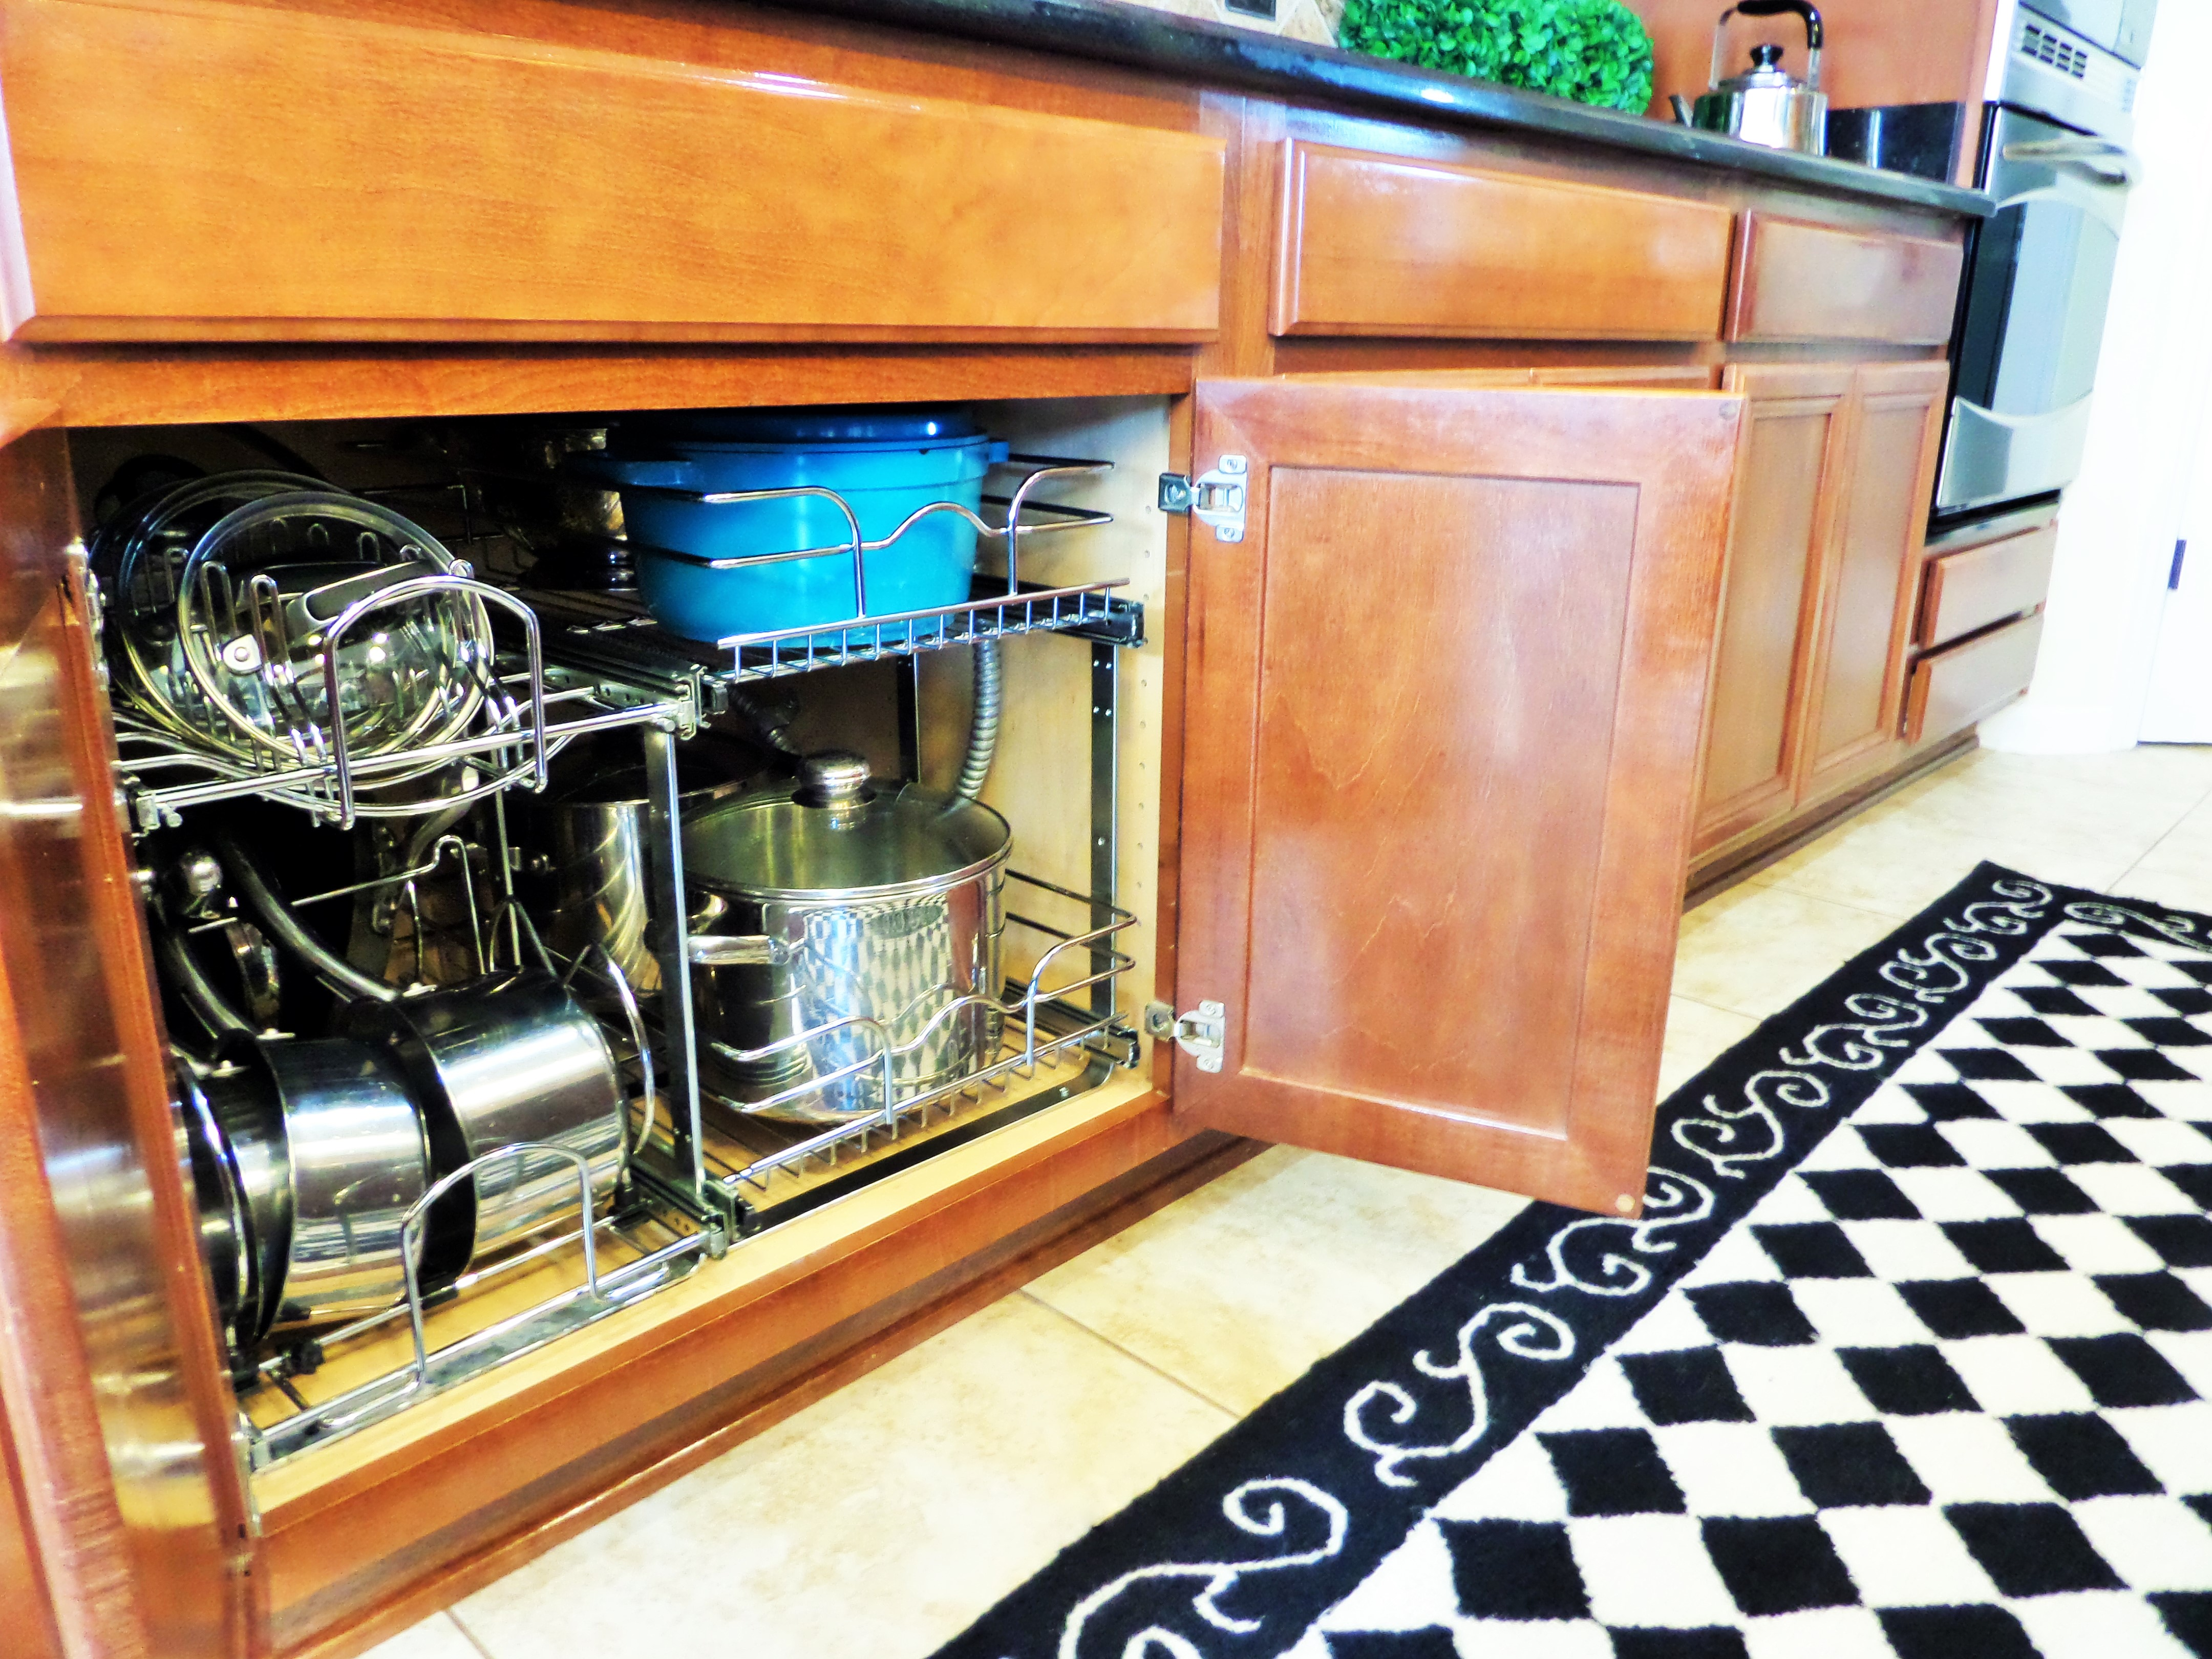 Kitchen Organization Ideas Pots Pans Be My Guest With